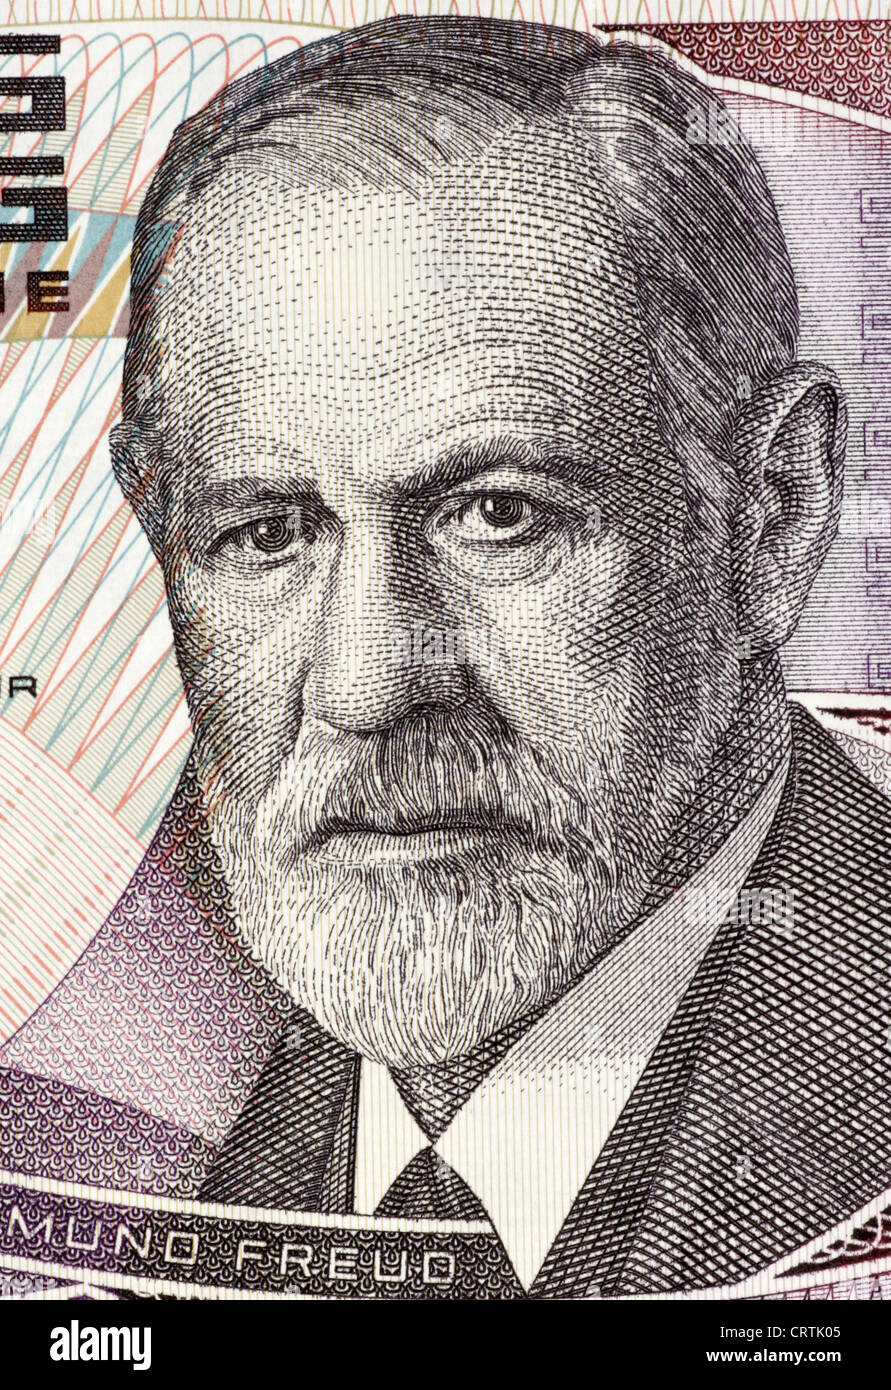 Sigmund Freud (1856-1939) on 50 Shilling 1986 Banknote from Austria. Stock Photo